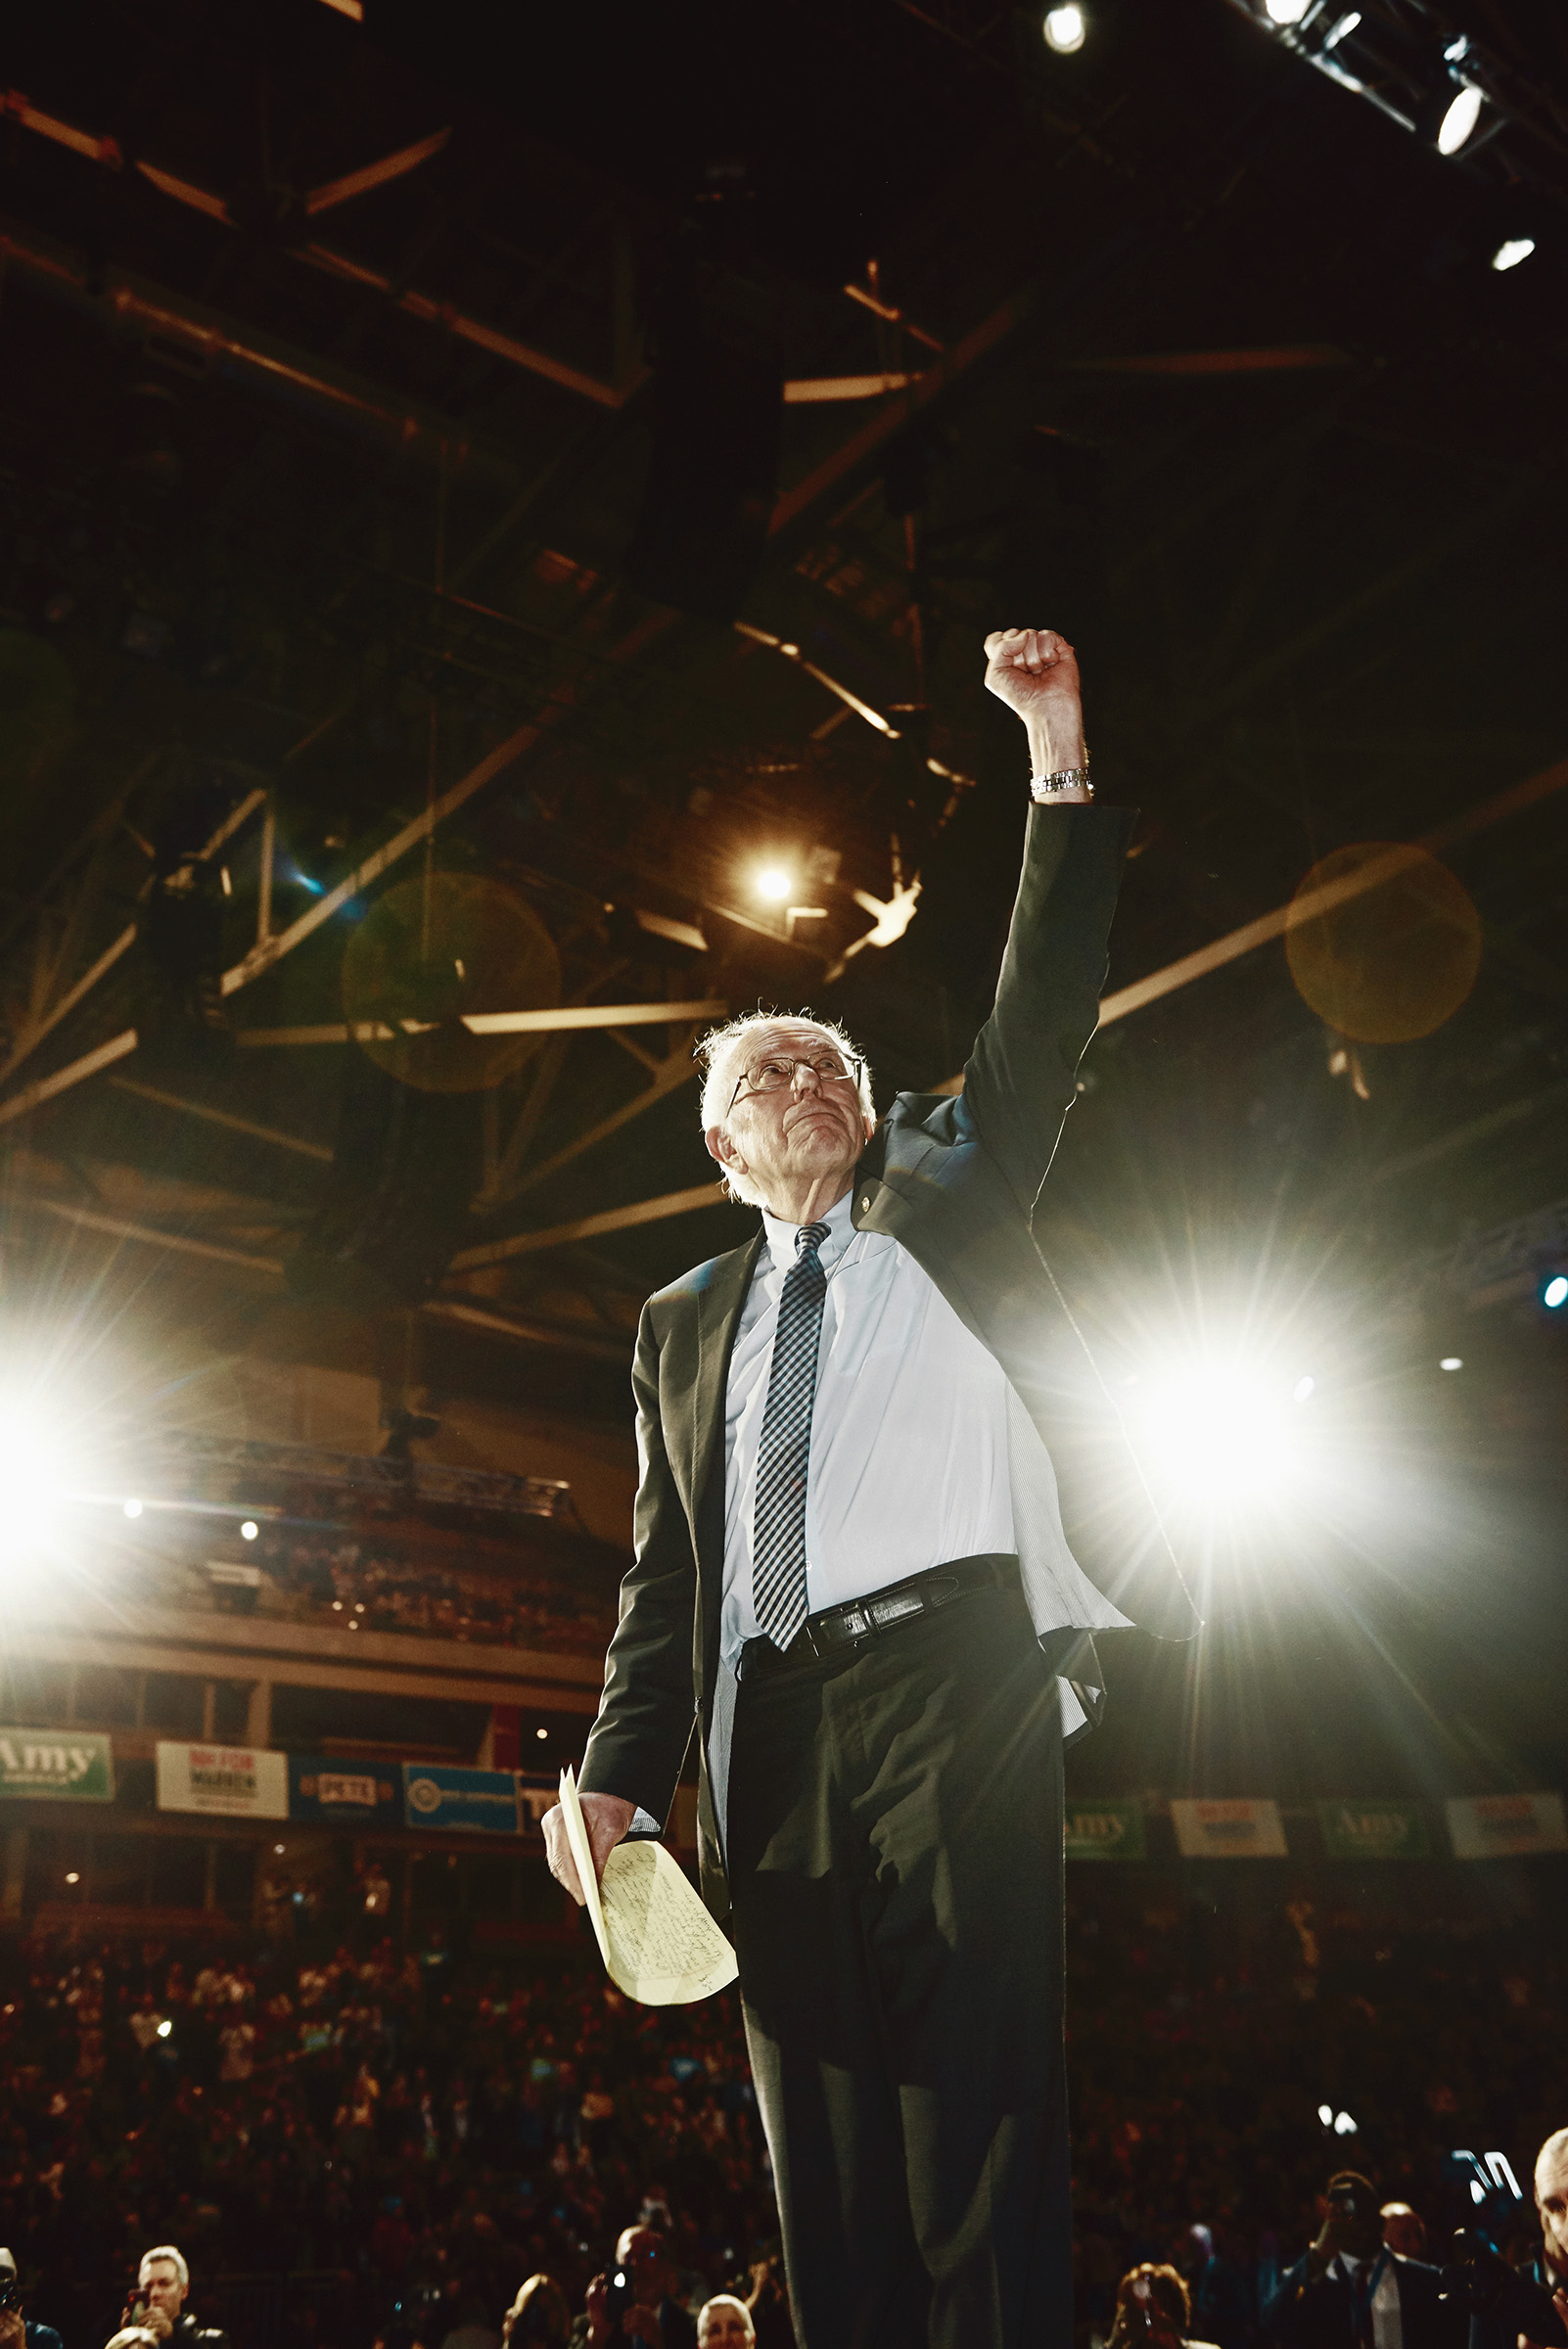 Sen. Bernie Sanders raises his fist at the New Hampshire Democratic Party's McIntyre-Shaheen 100 Club Event in Manchester, N.H., on Feb. 8.